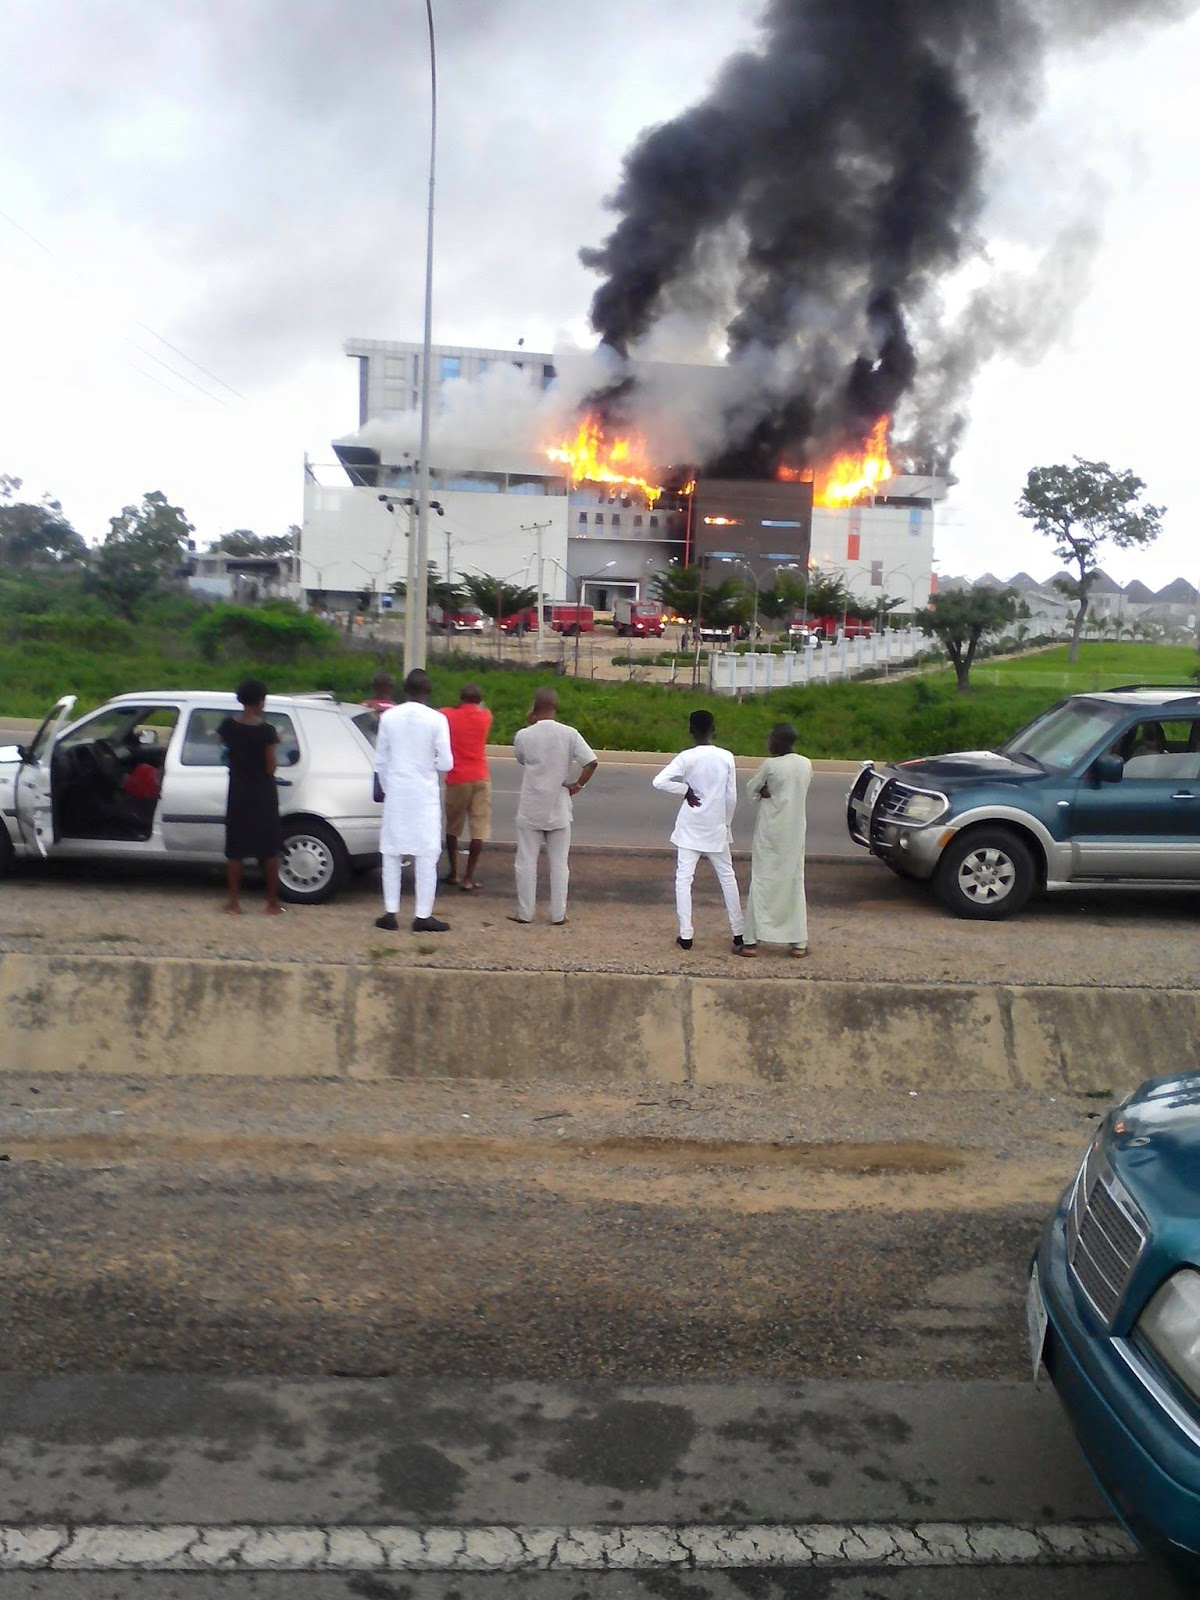 Witnesses Reveal How House On The Rock Fire Began... (See Full Details)